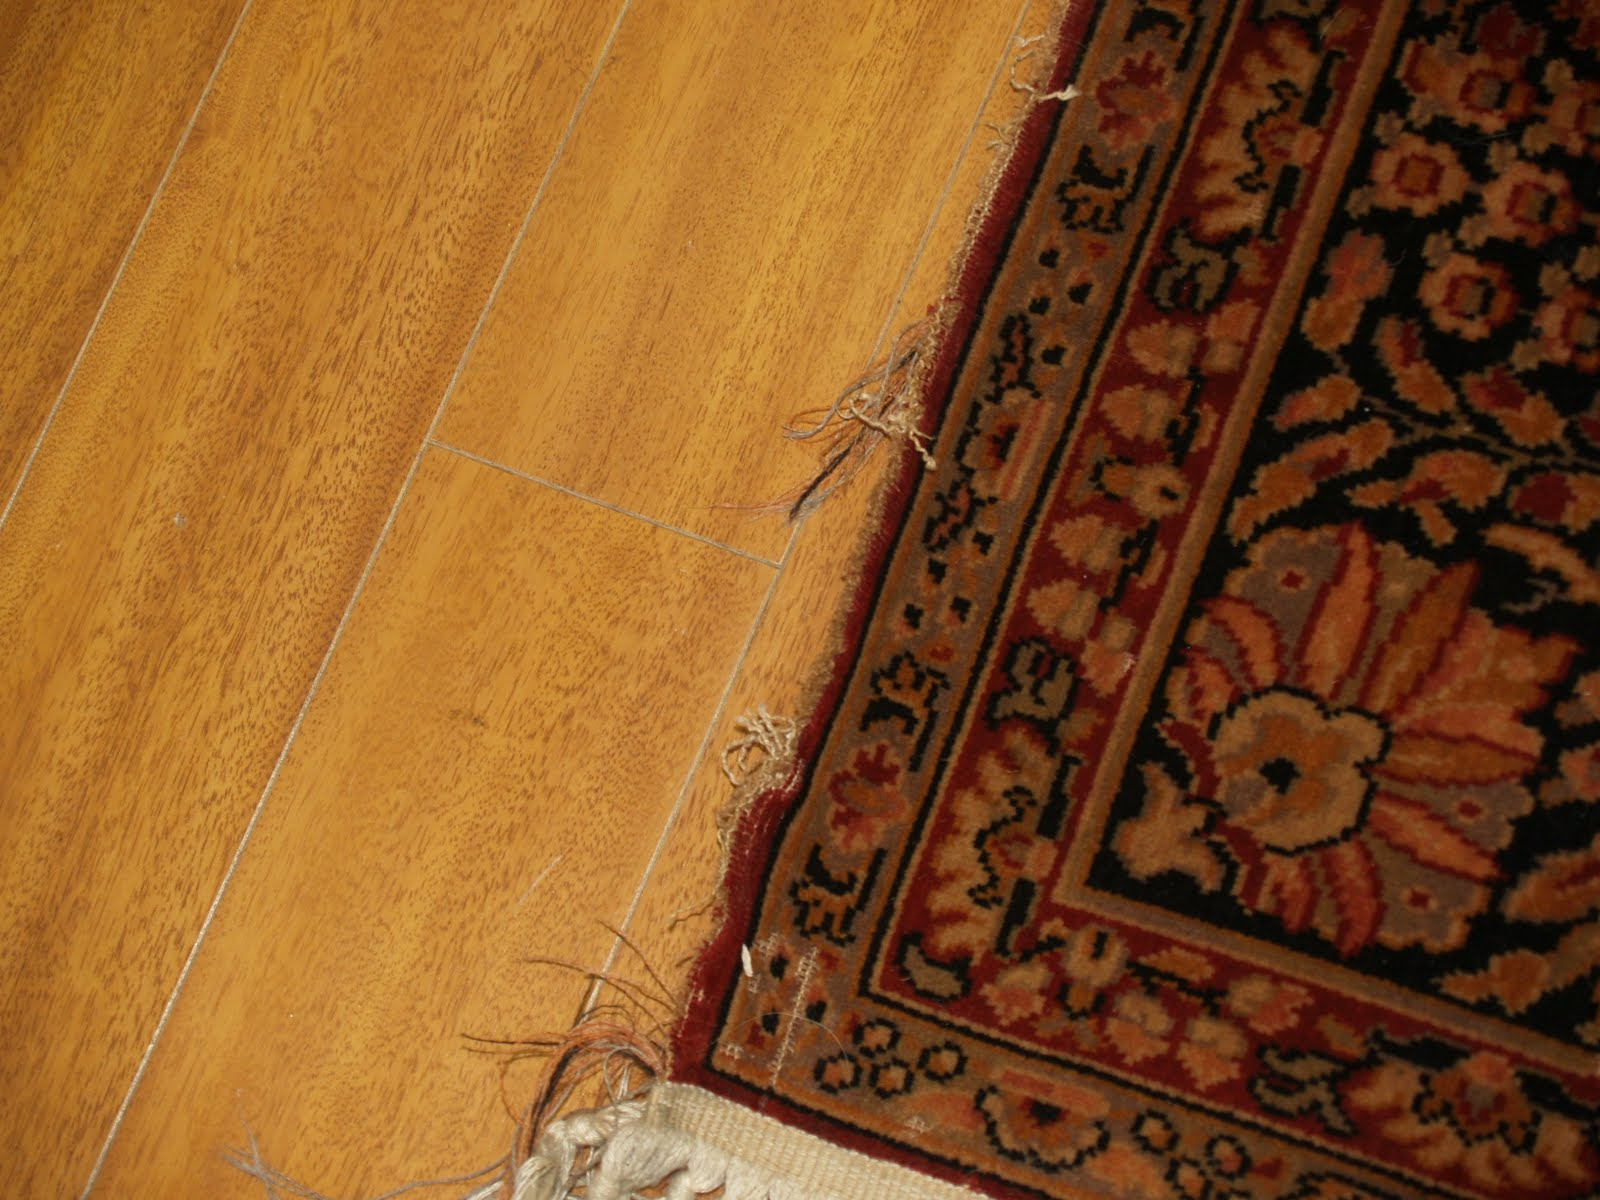 Few Days Ago We Picked Up A Whittall Anglo Area Rug For Cleaning And Repair From Client S House Here In Los Angeles The Was Quite Dirty Had